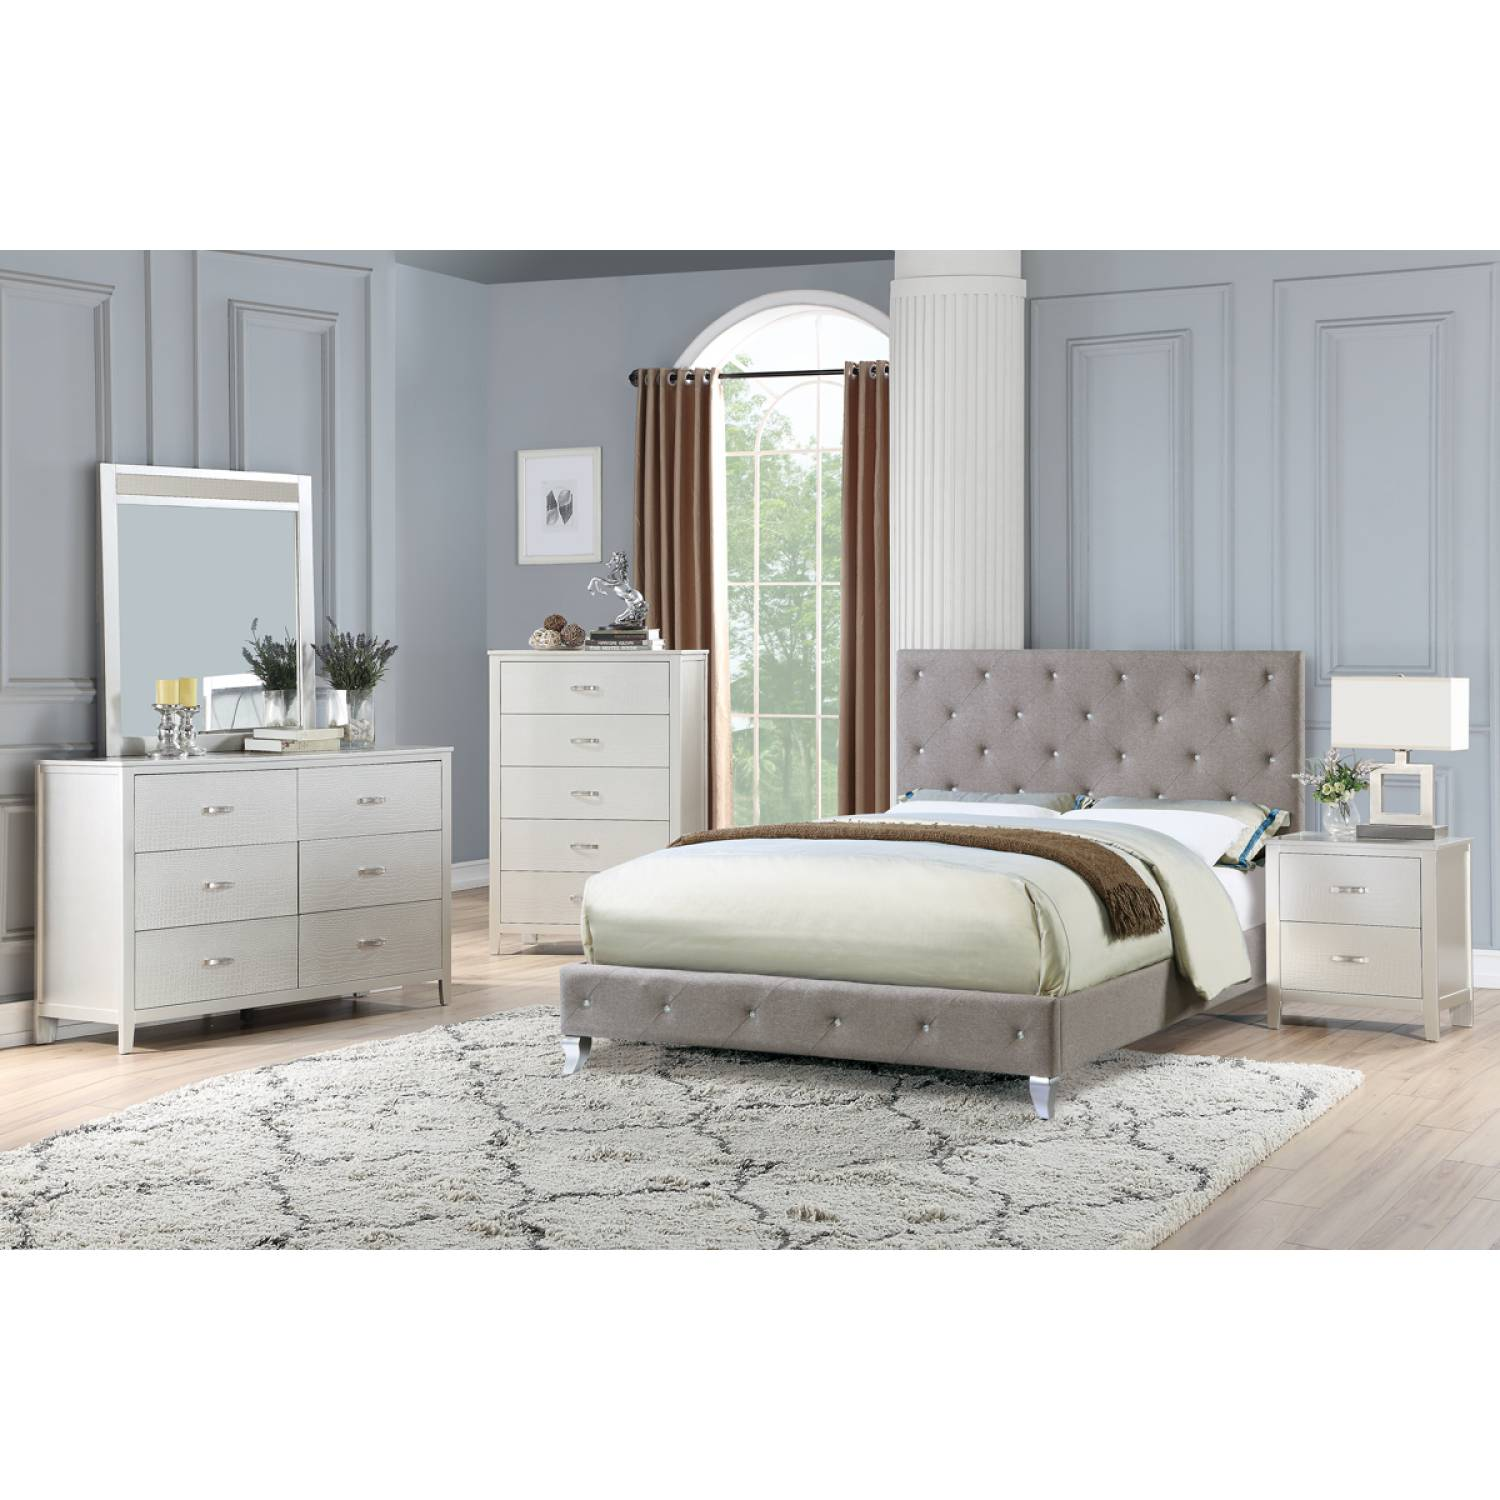 F9418q 5pc Sets Queen Bed